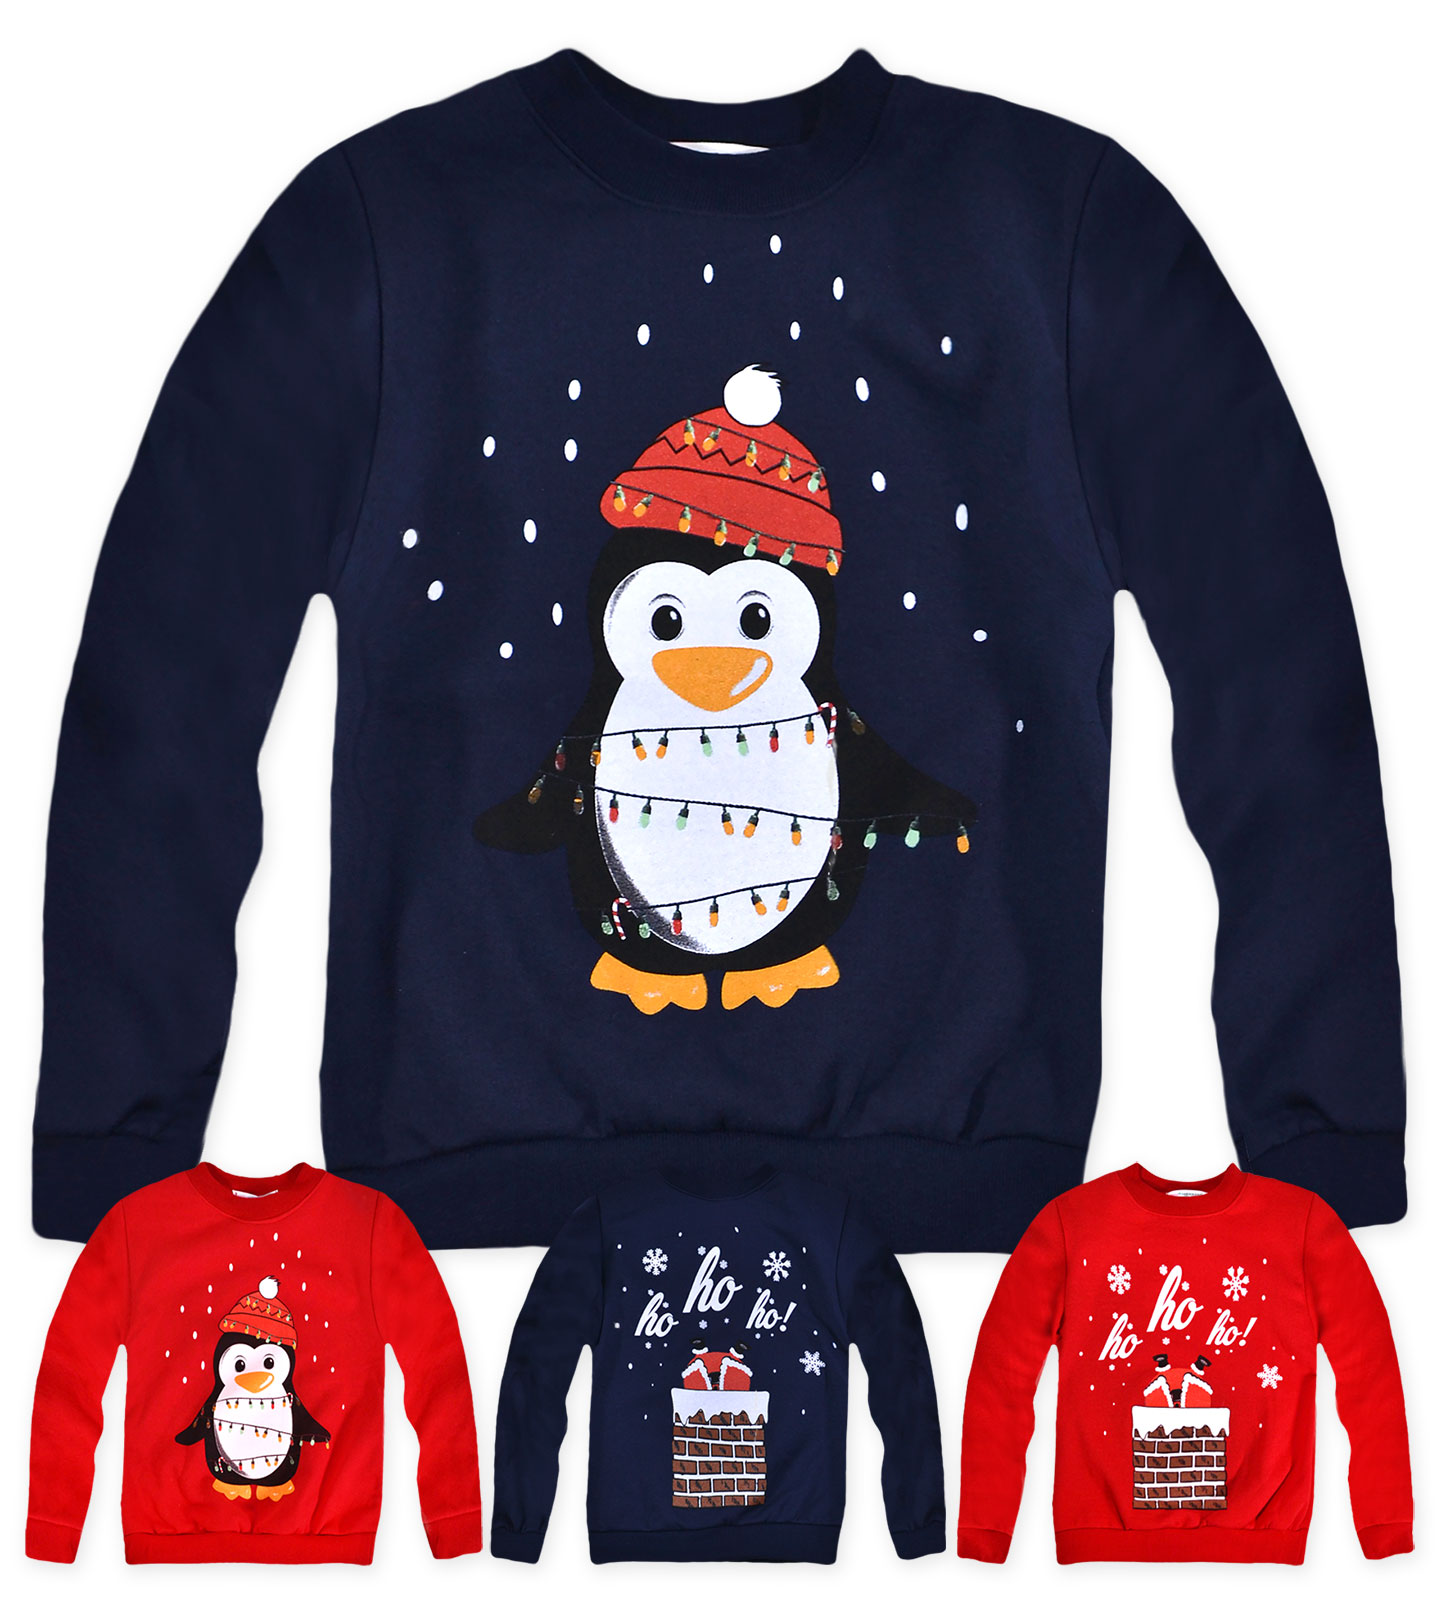 Boys Christmas Jumper Penguin Red Xmas Children Age 7 8 9 10 11 12 13 Years